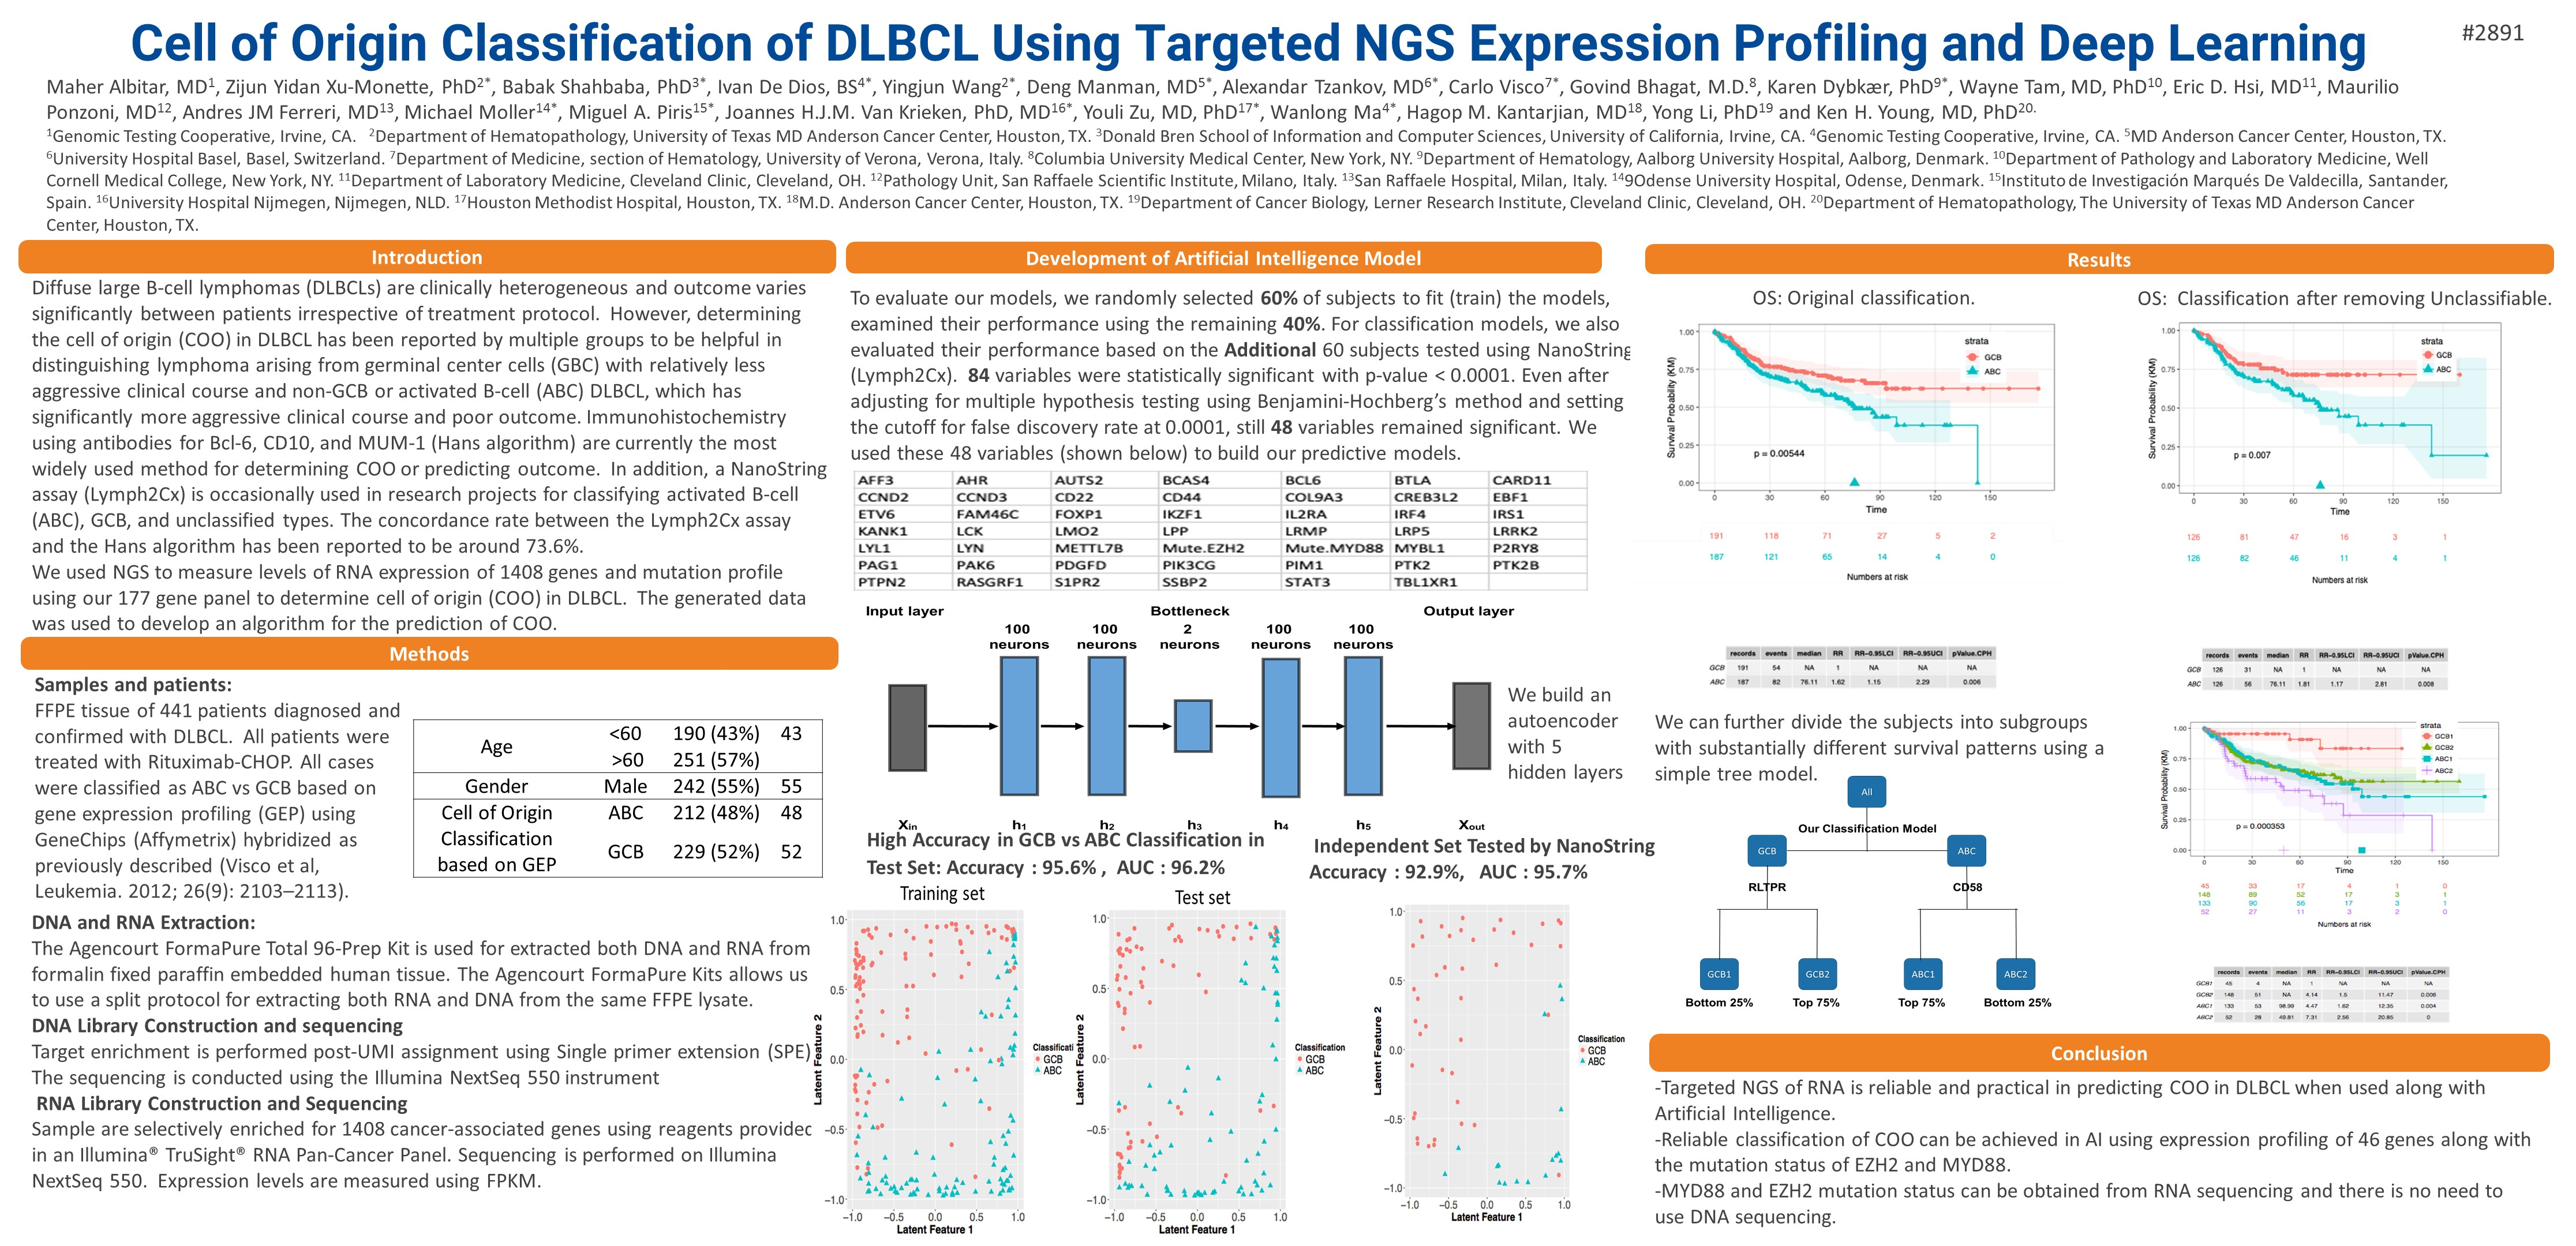 Cell of Origin Classification of DLBCL Using Targeted NGS Expression Profiling and Deep Learning